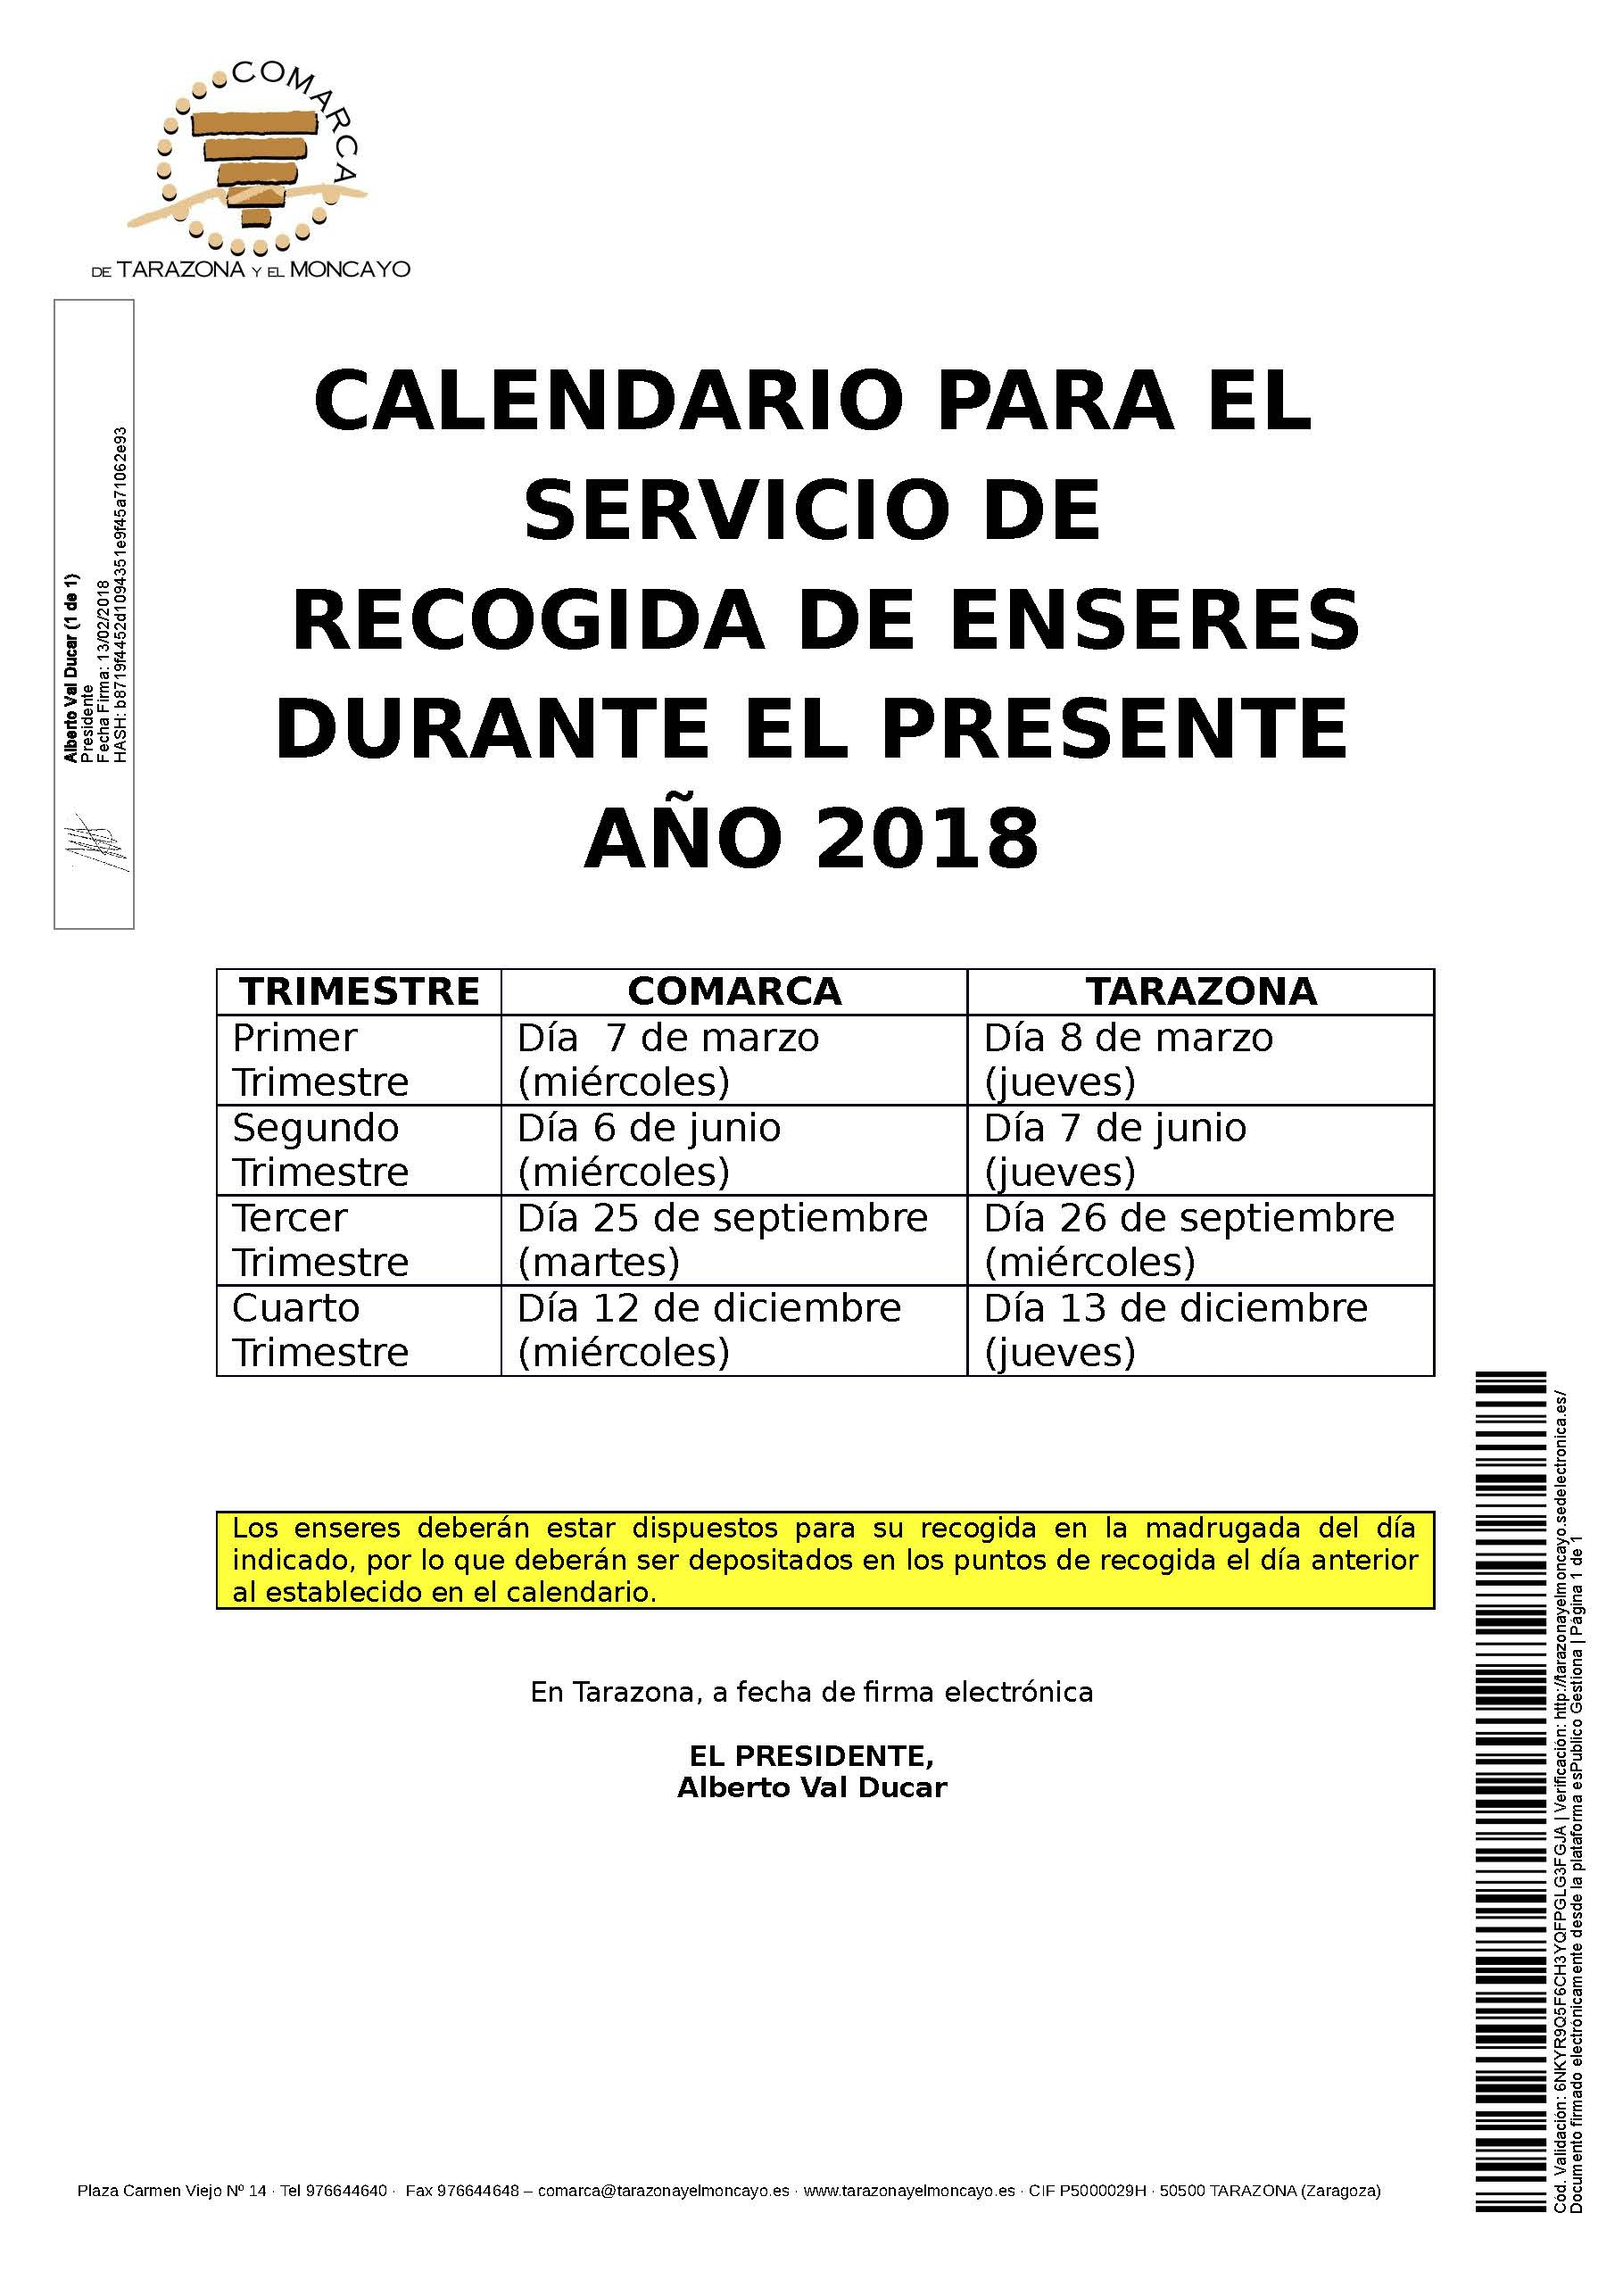 2018 calendarioenseres cartel